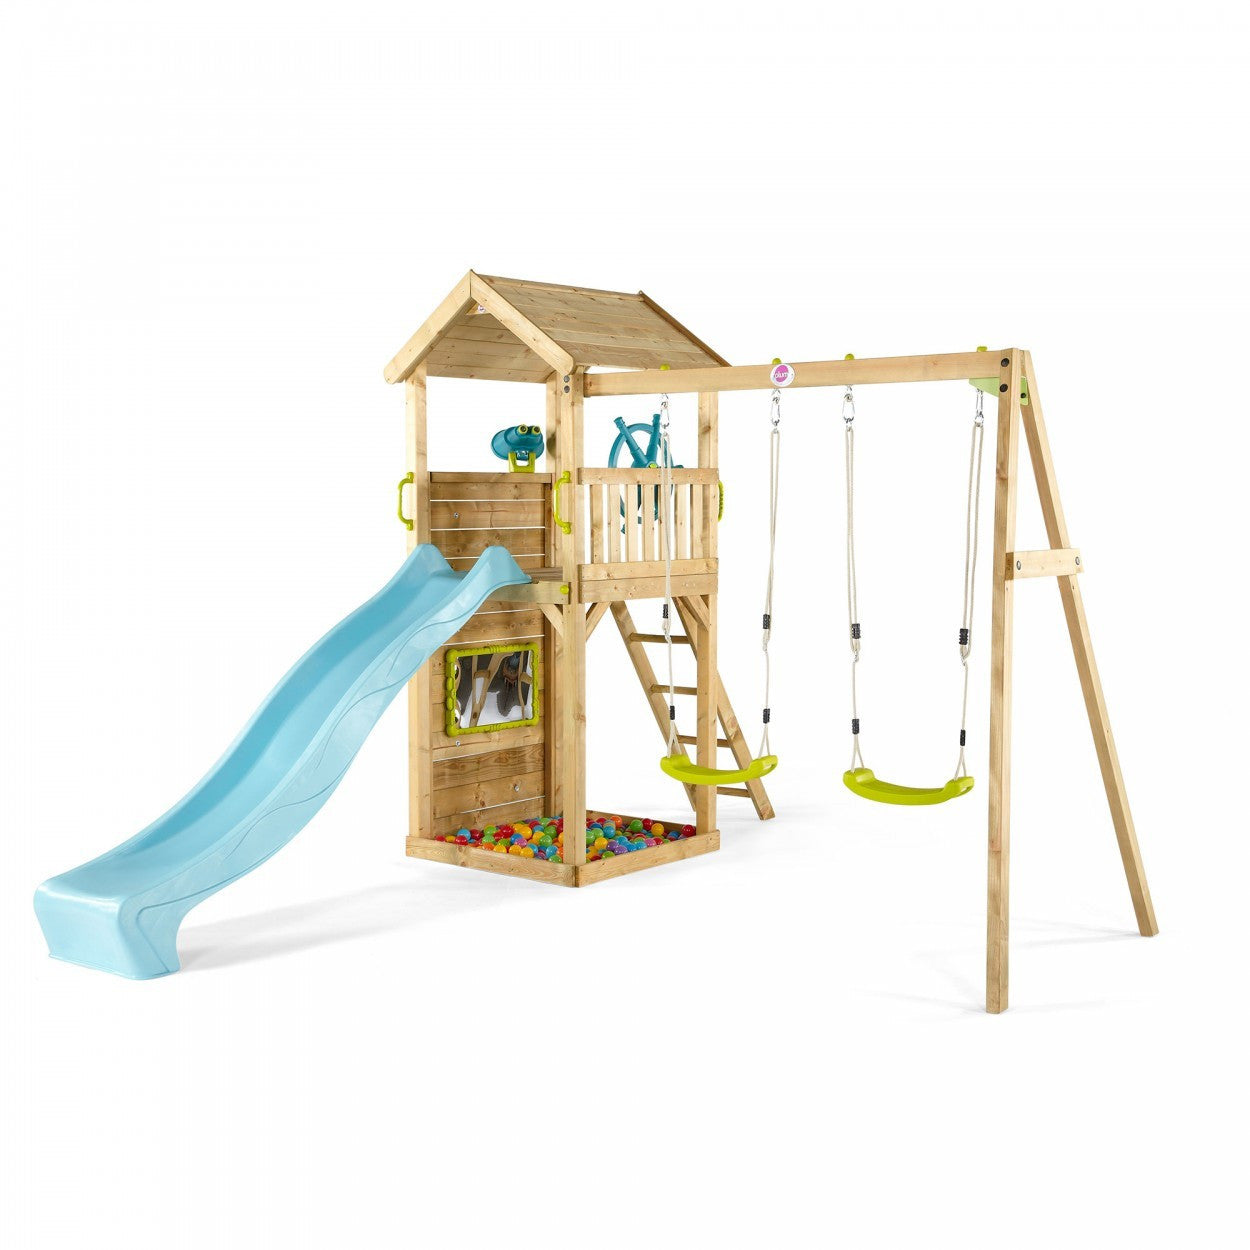 Plum Lookout Tower Wooden Play Centre with Swings, Binoculars and ...